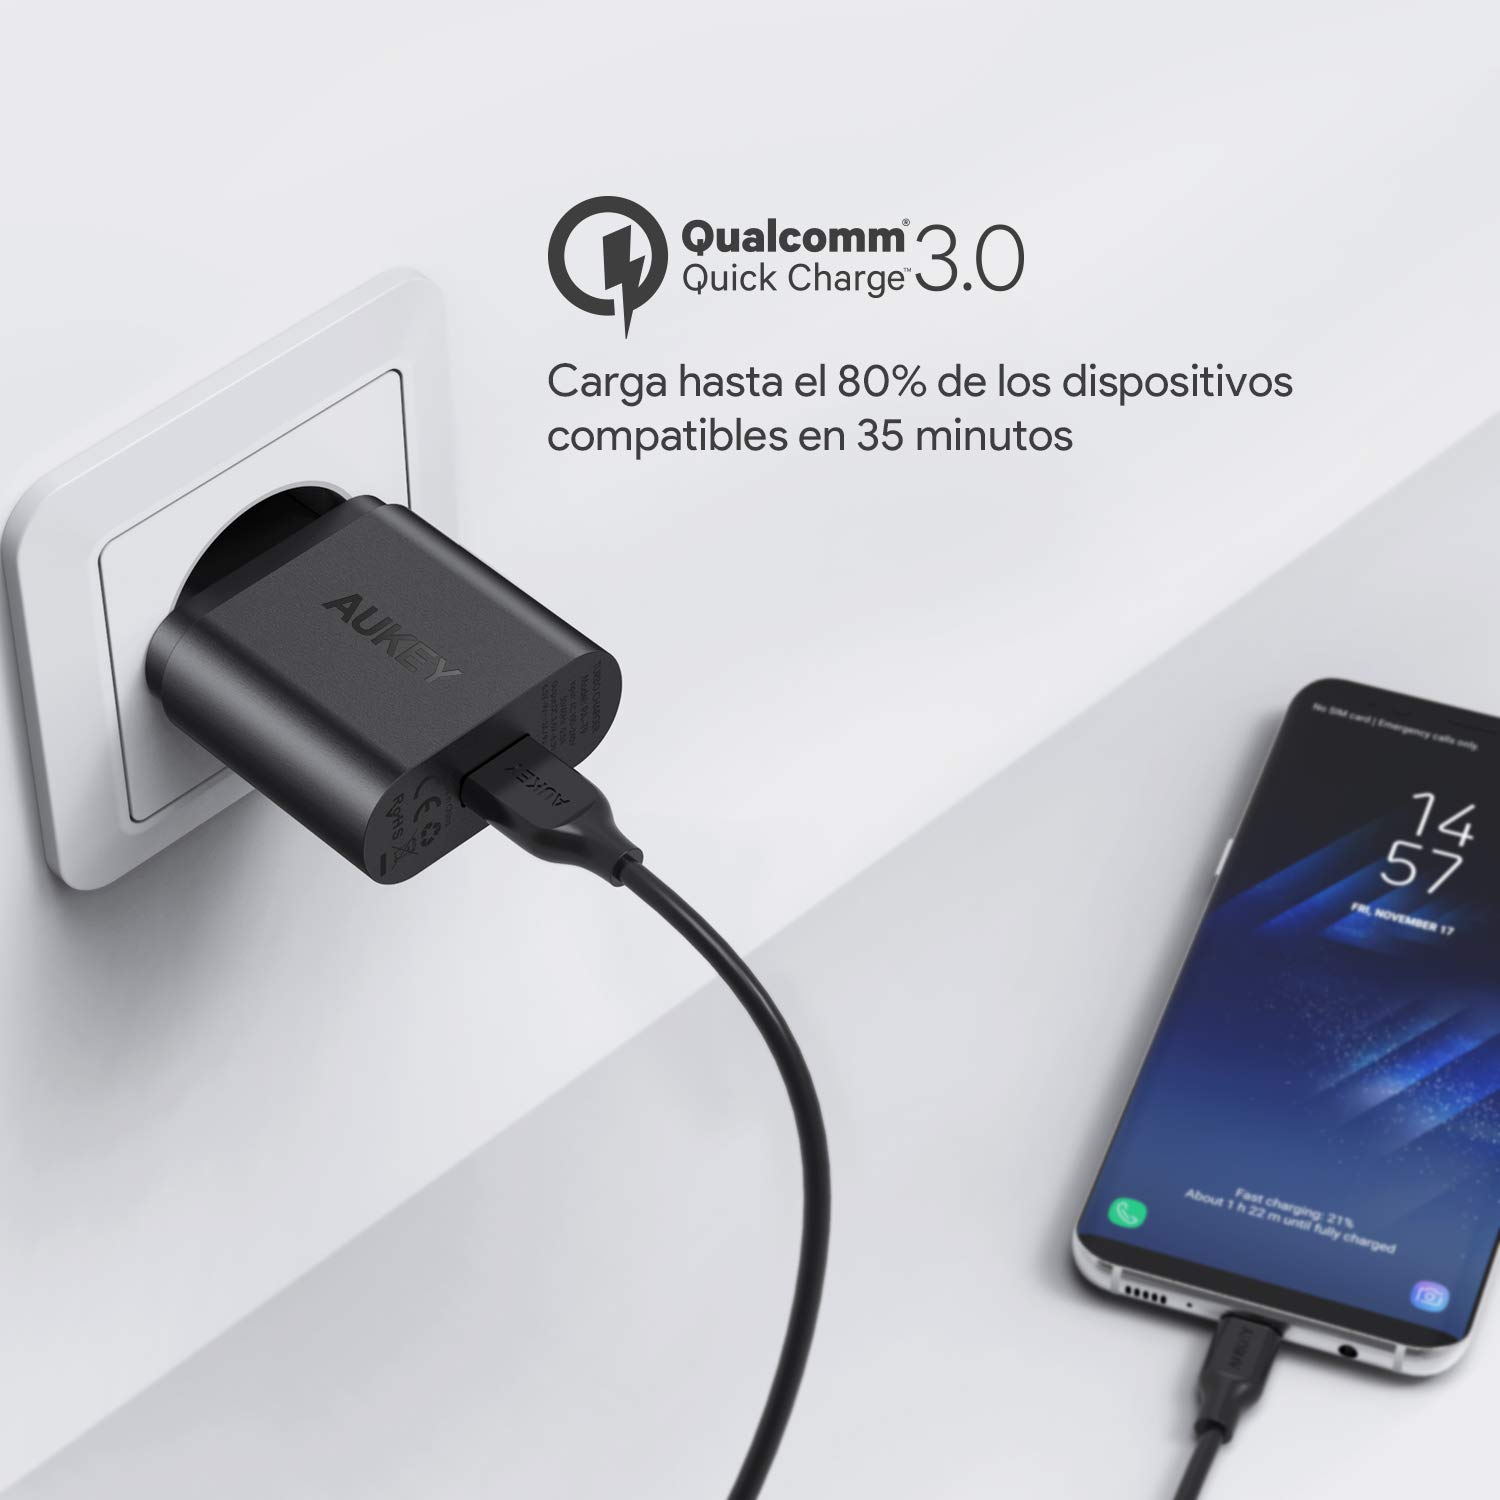 AUKEY Quick Charge 3.0 Cargador de Red 18W [Qualcomm Certificado] Cargador Móvil para Samsung Galaxy S8 / Note 8, LG G5, Nexus, HTC, iPhone XS / ...